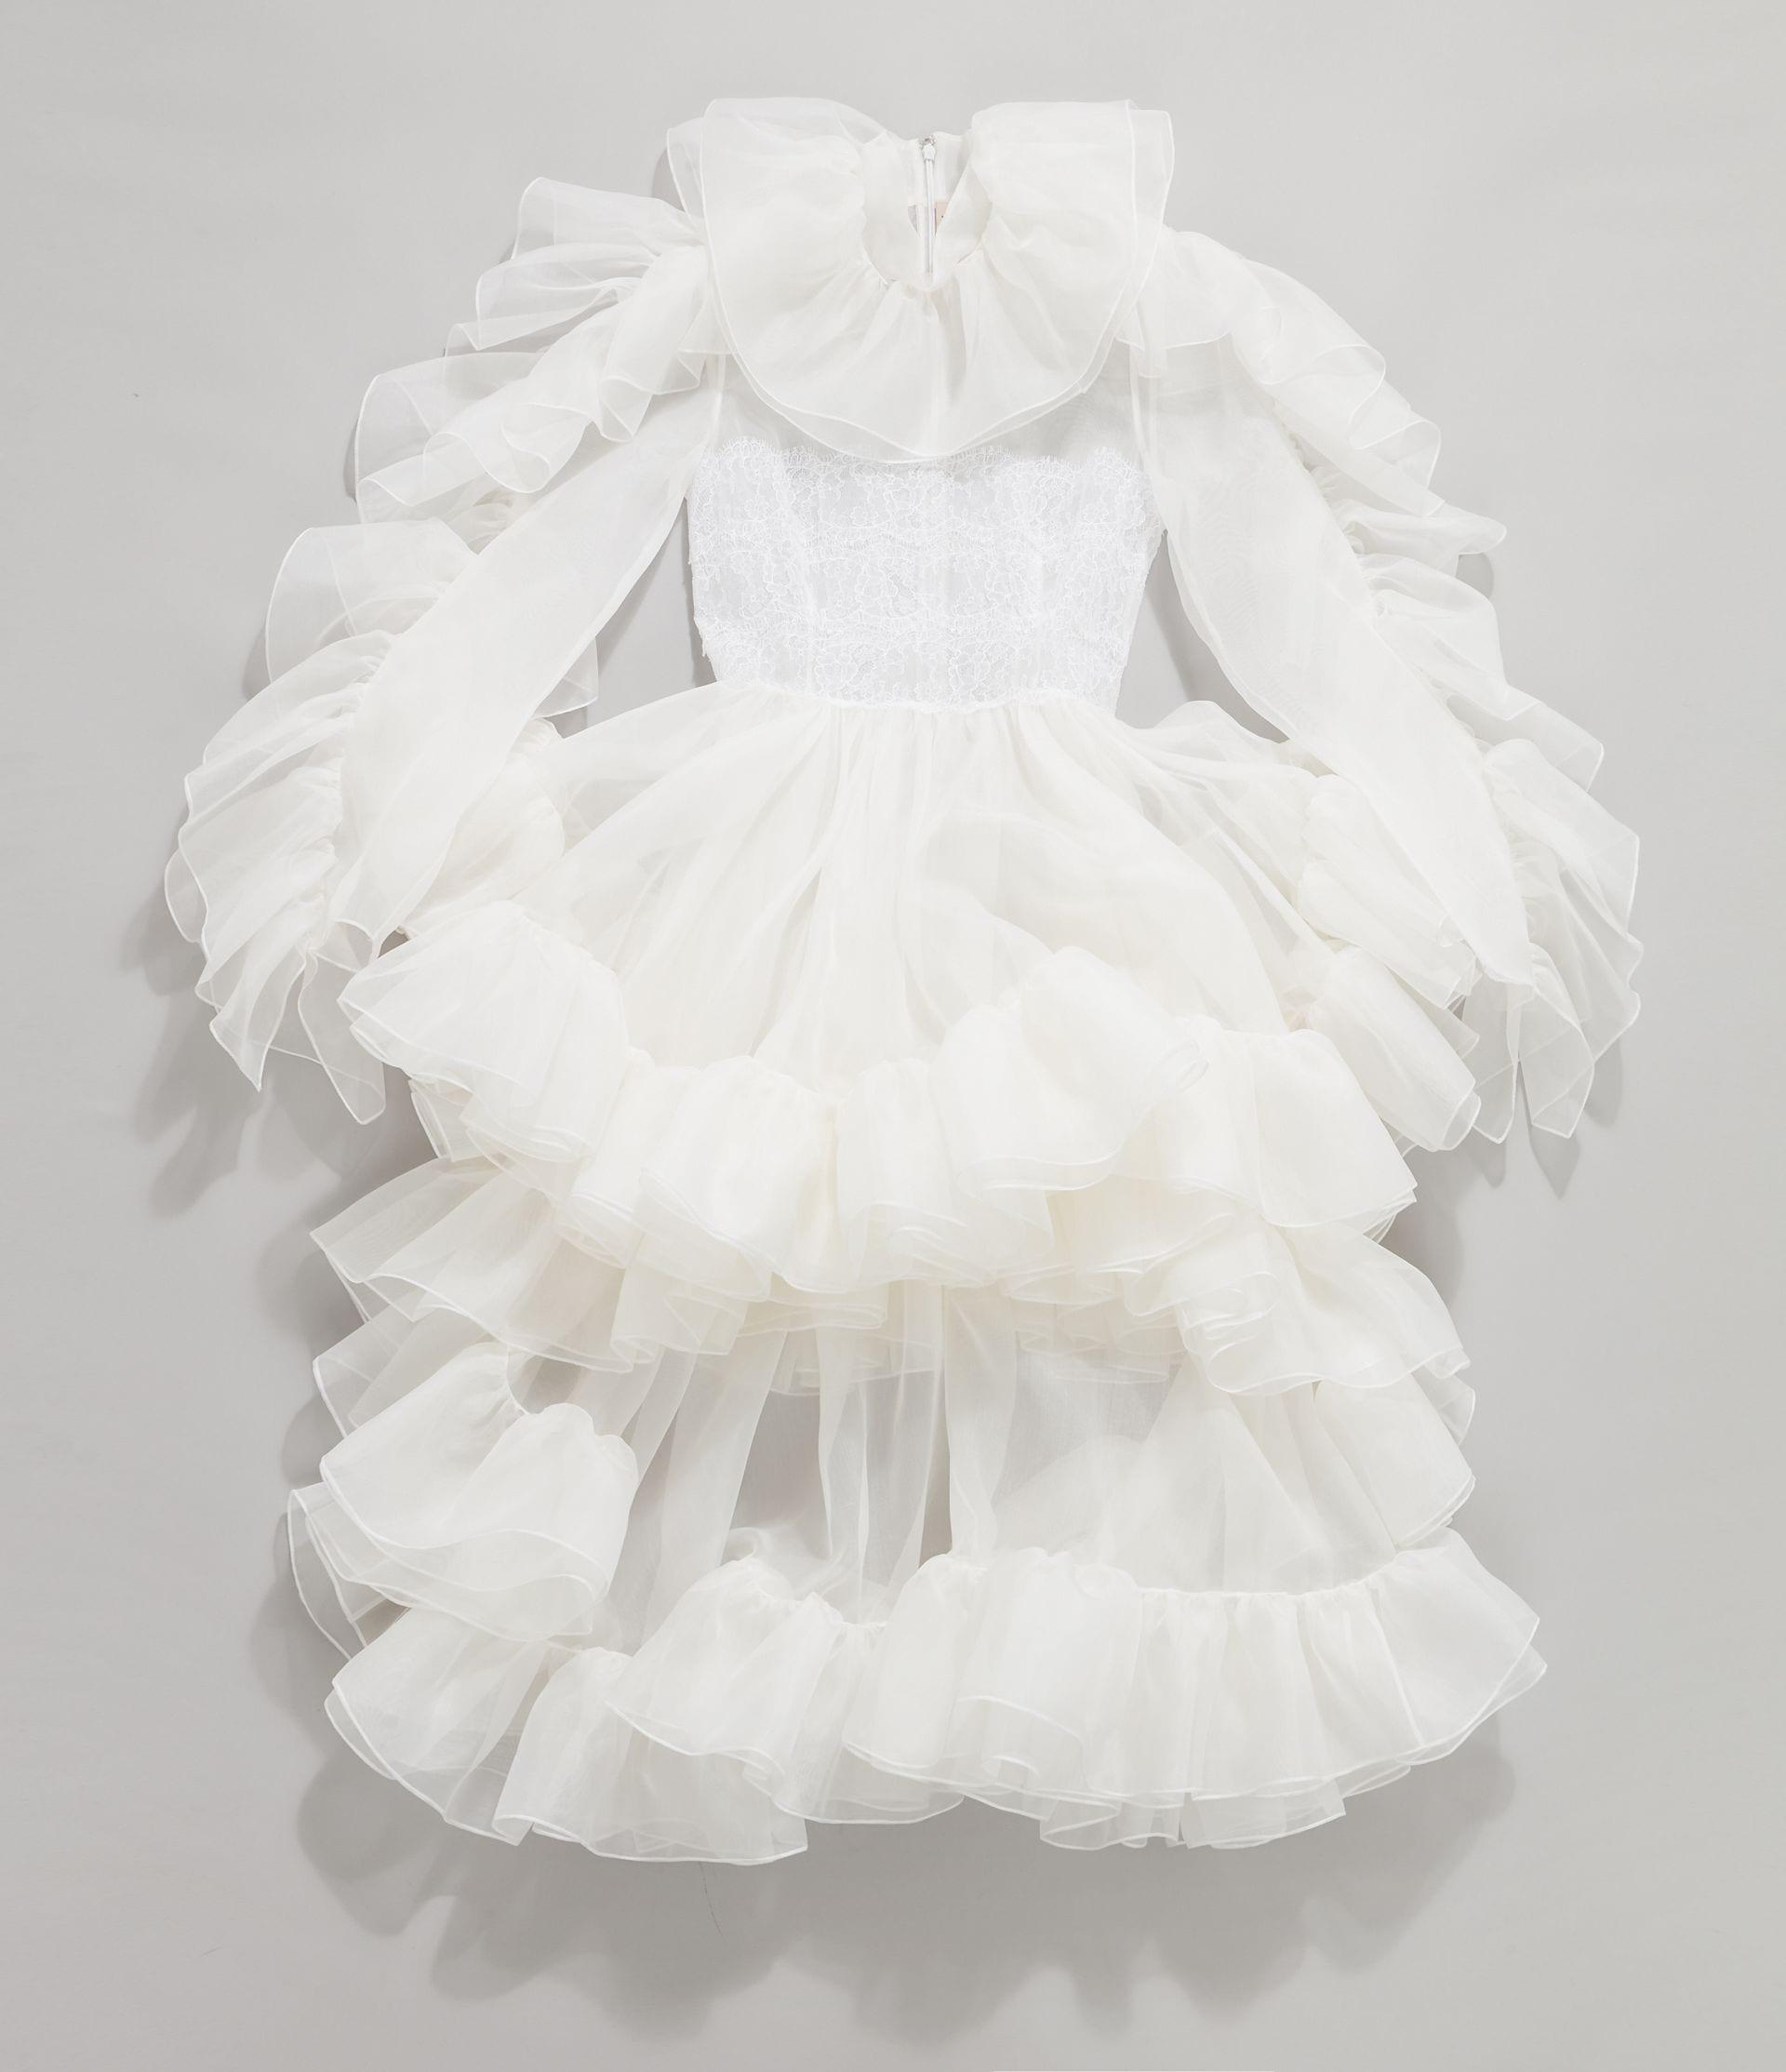 Christopher Kane Bridal: The Organza Frill Gown 4